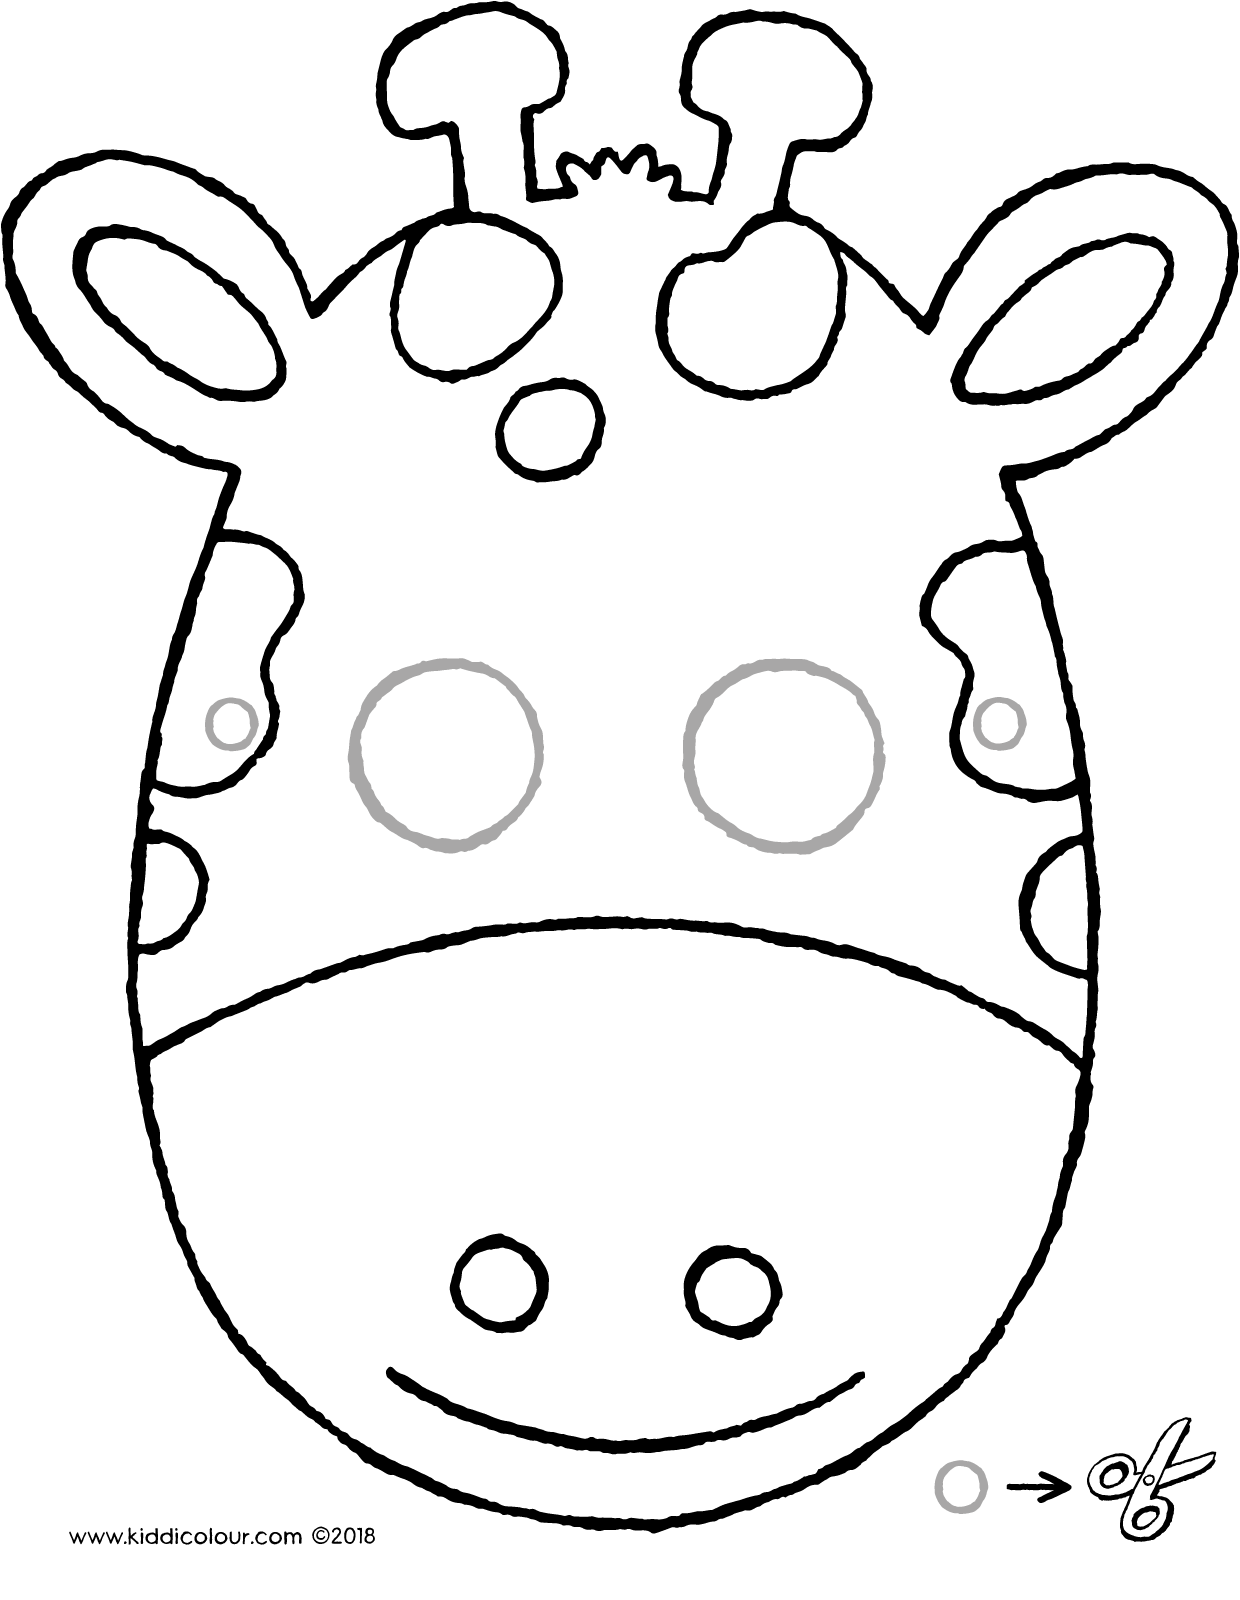 make your own giraffe mask colouring page drawing picture 01V